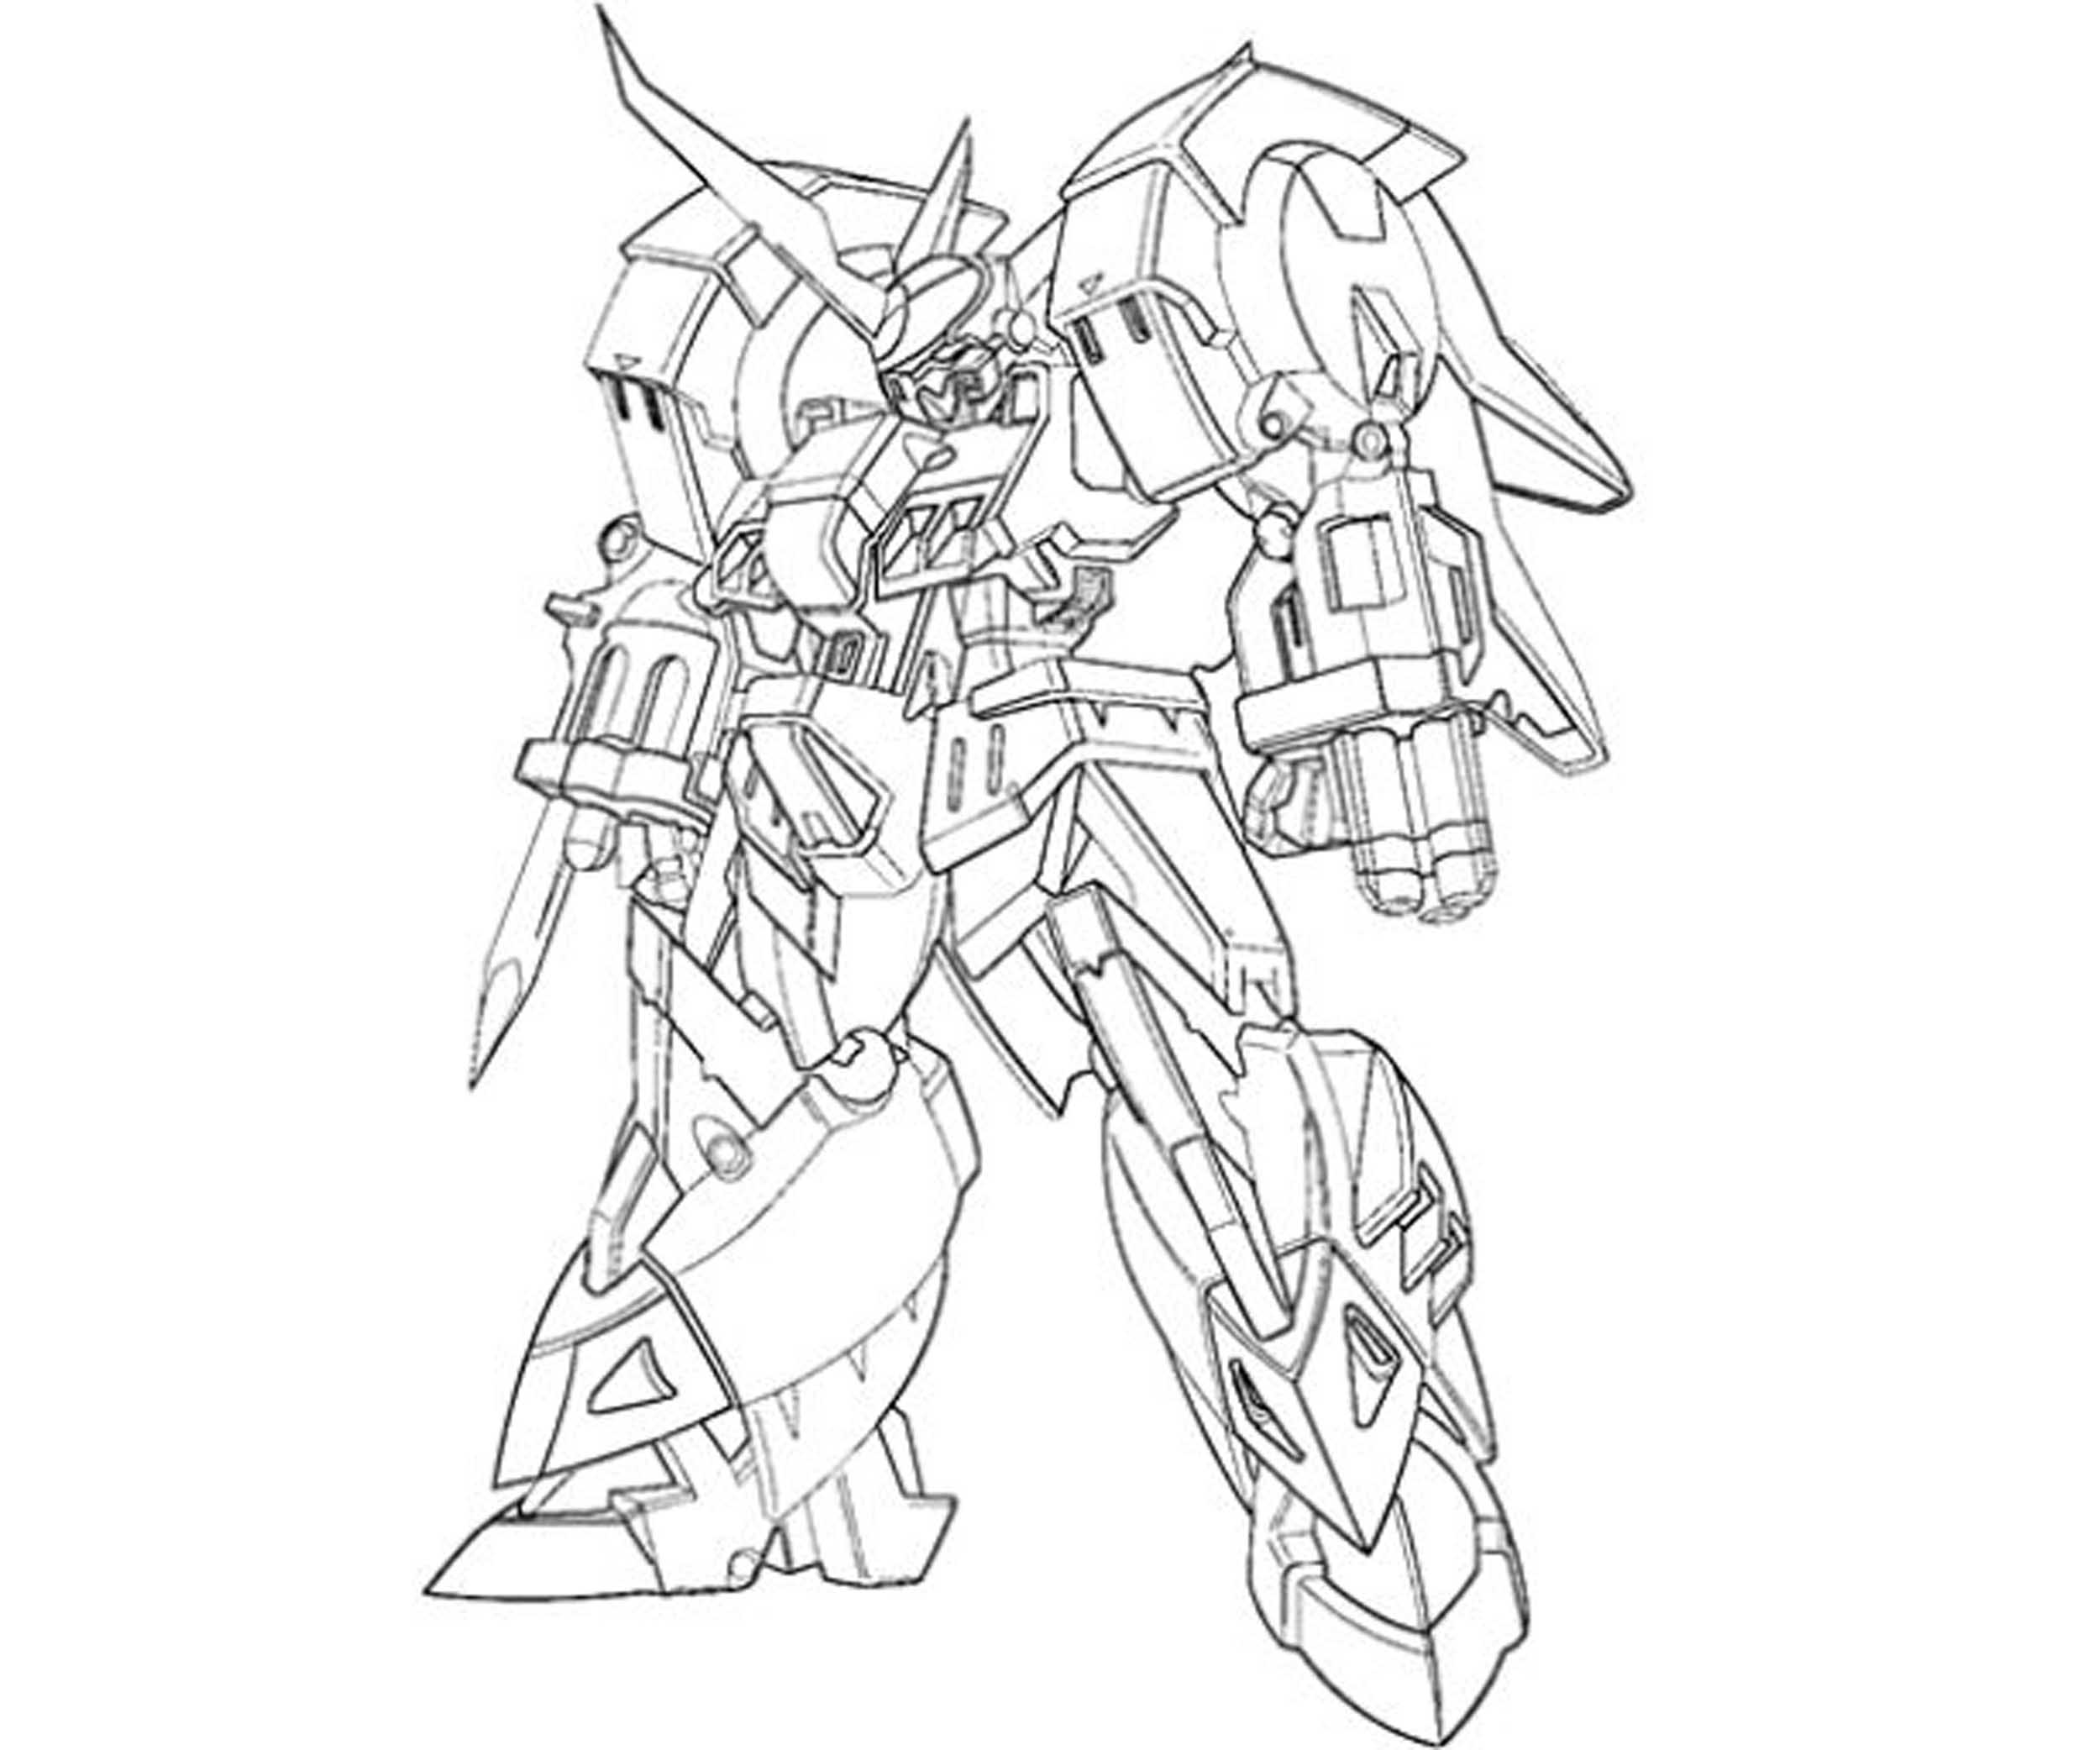 picture regarding Transformers Printable Coloring Pages named Print Obtain - Inviting Little ones in the direction of Do the Transformers